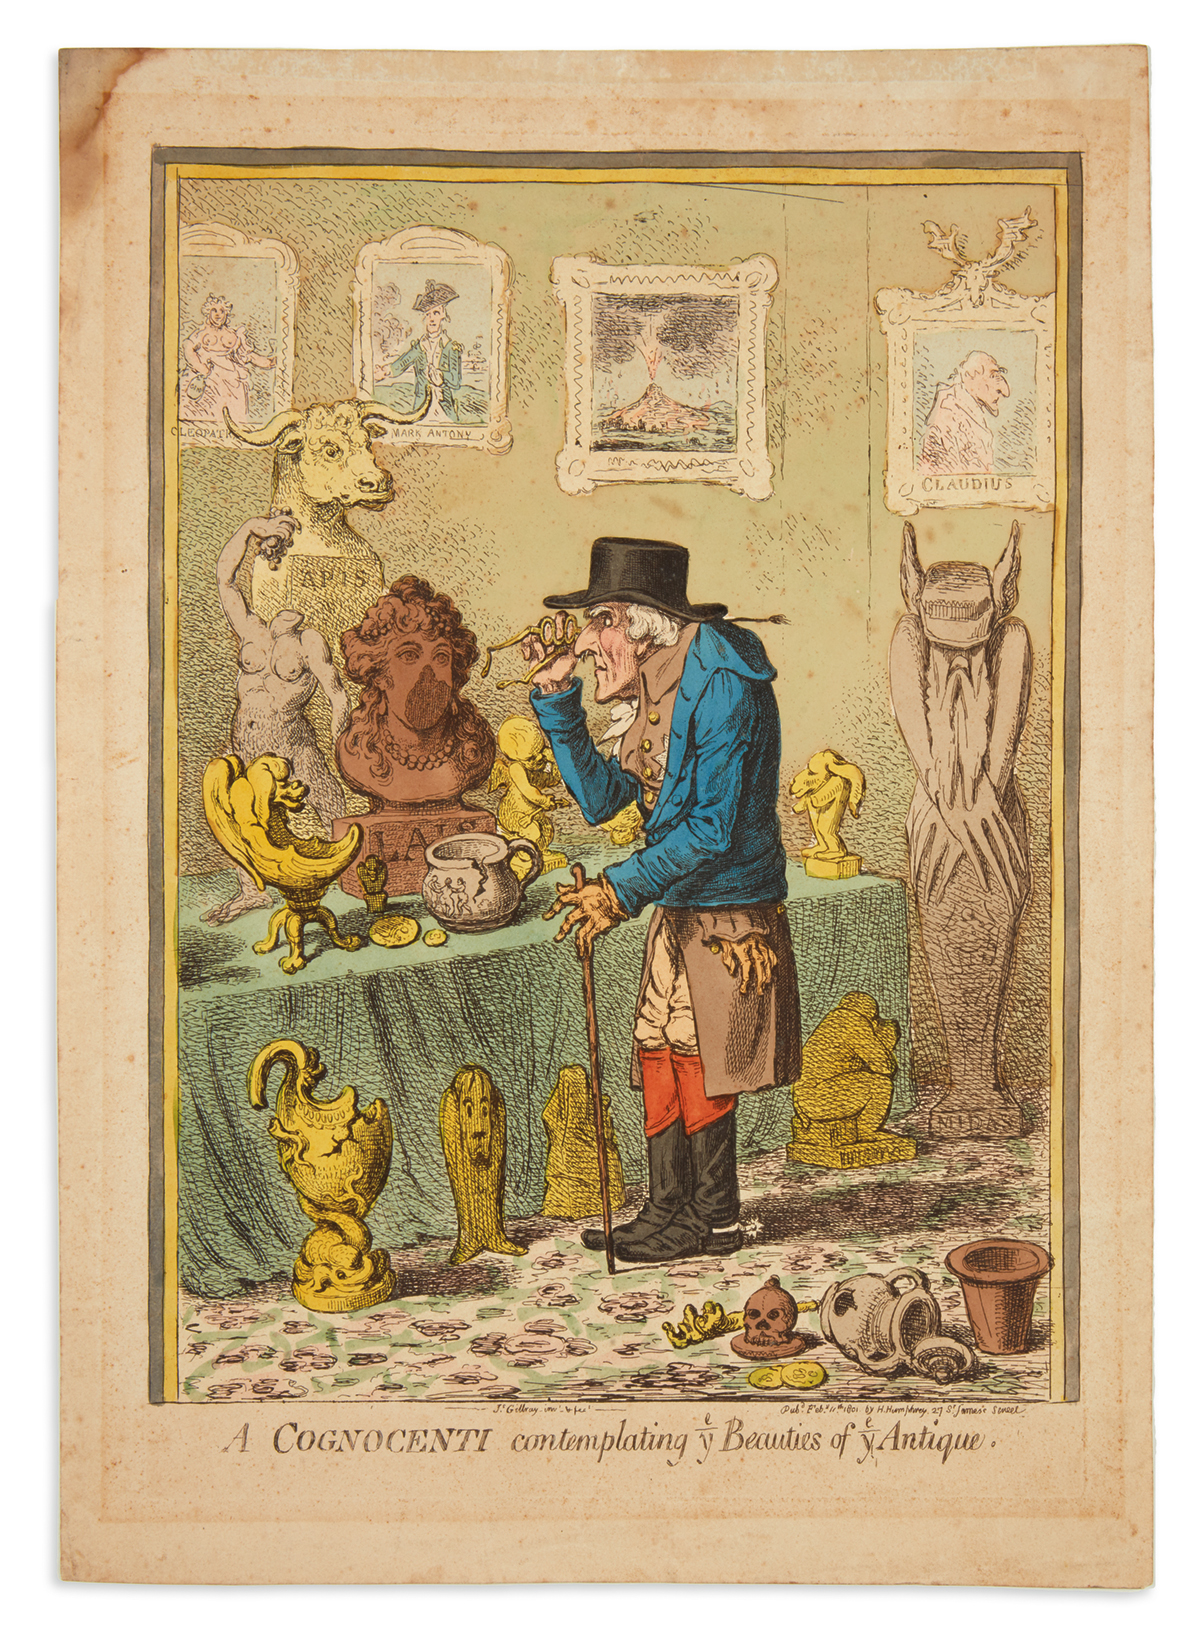 GILLRAY-JAMES-A-Cognocenti-Contemplating-ye-Beauties-of-ye-A